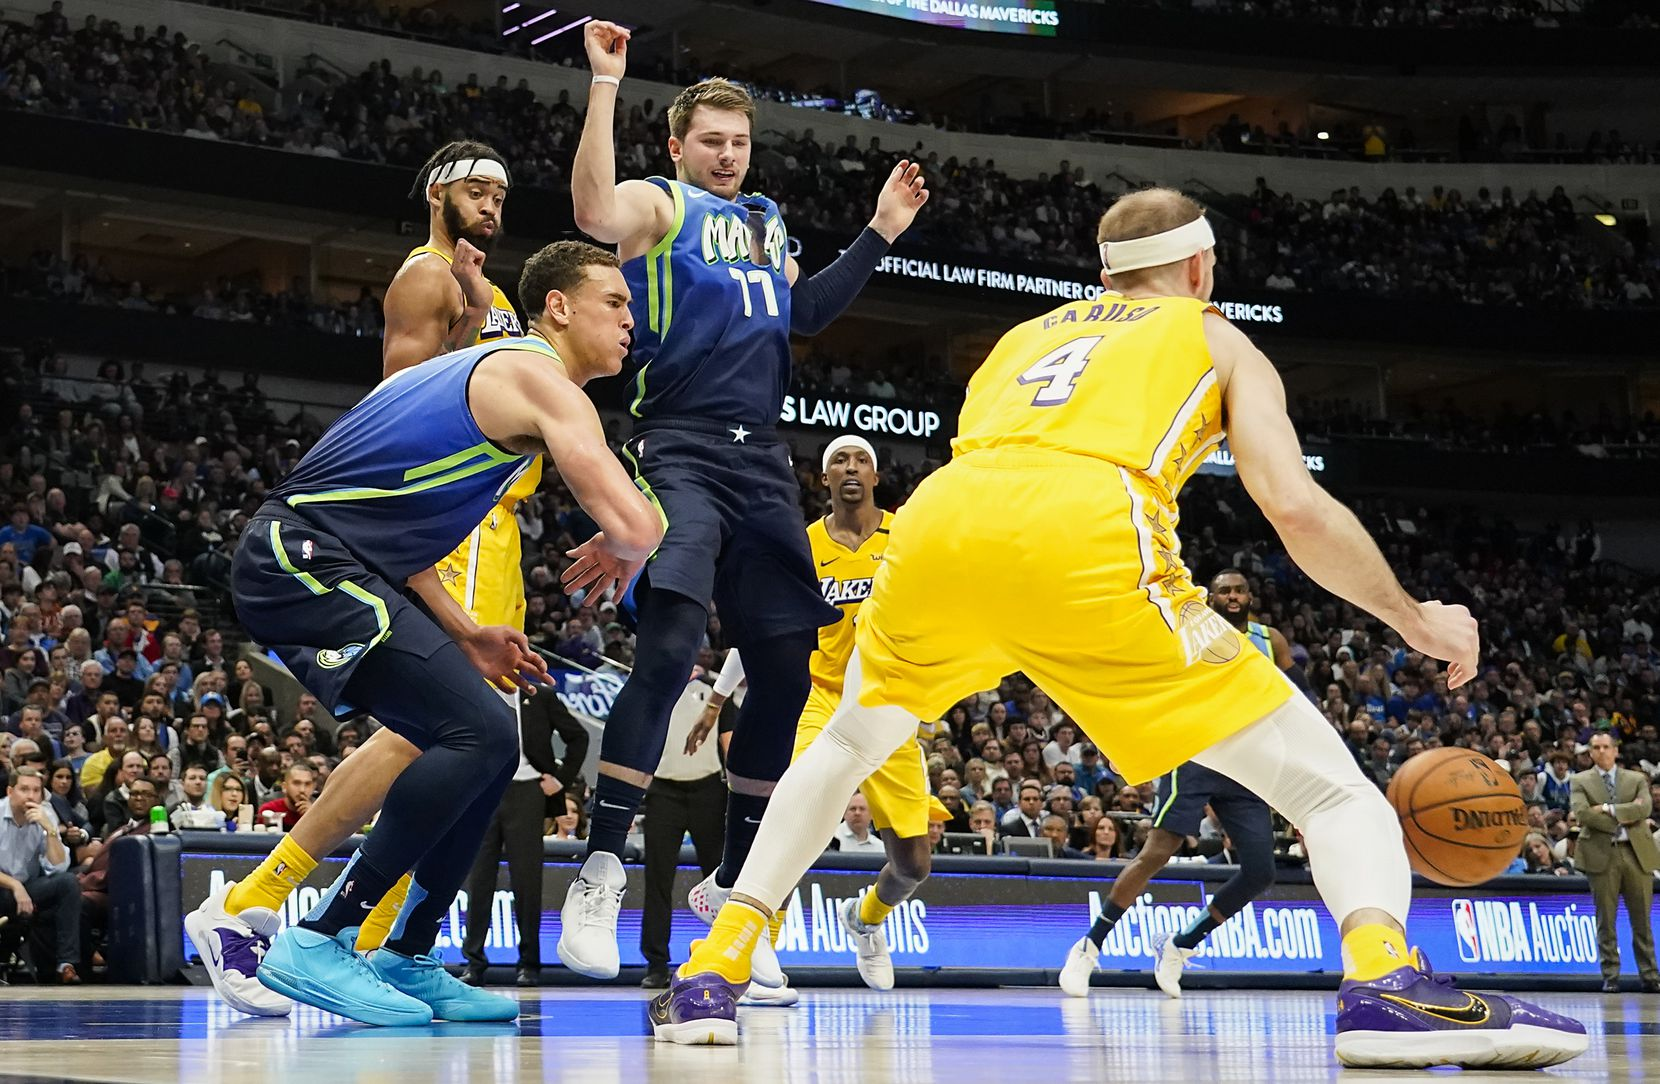 Dallas Mavericks guard Luka Doncic (77) plays with a ripped jersey late in the during second quarter of an NBA basketball game against the Los Angeles Lakers at American Airlines Center on Friday, Jan. 10, 2020, in Dallas.